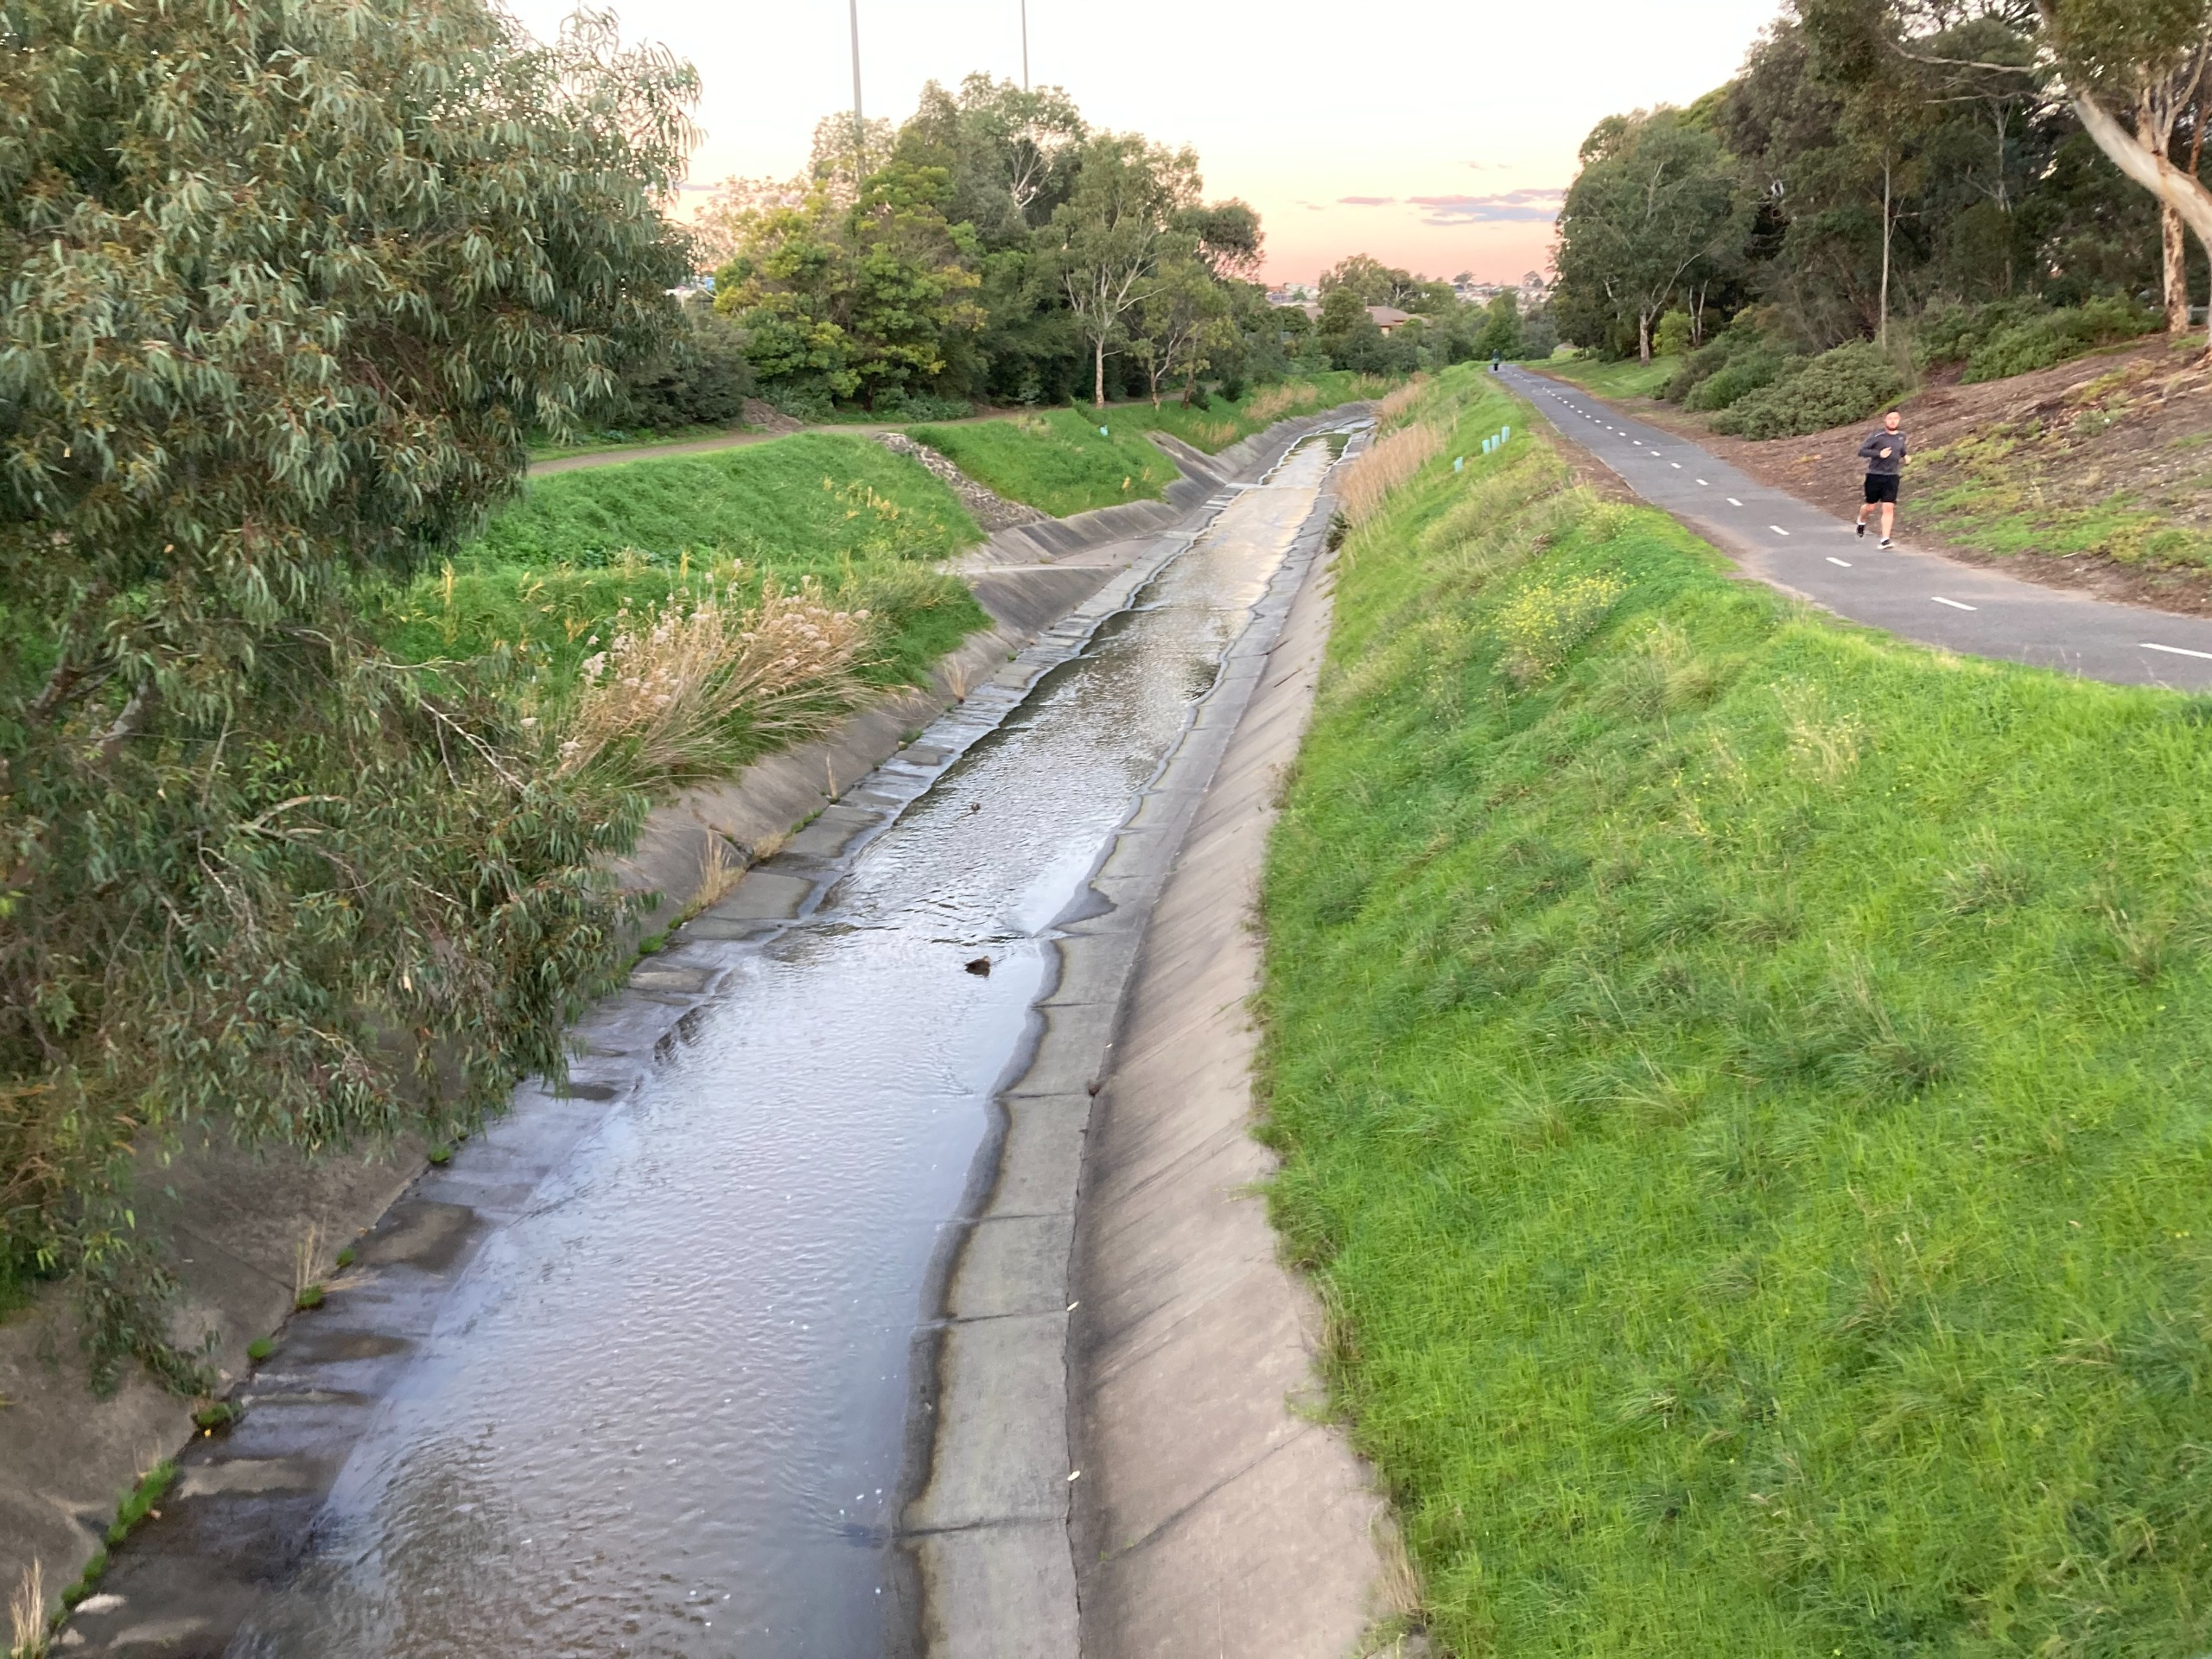 Photo of creek with concrete and grass edging.